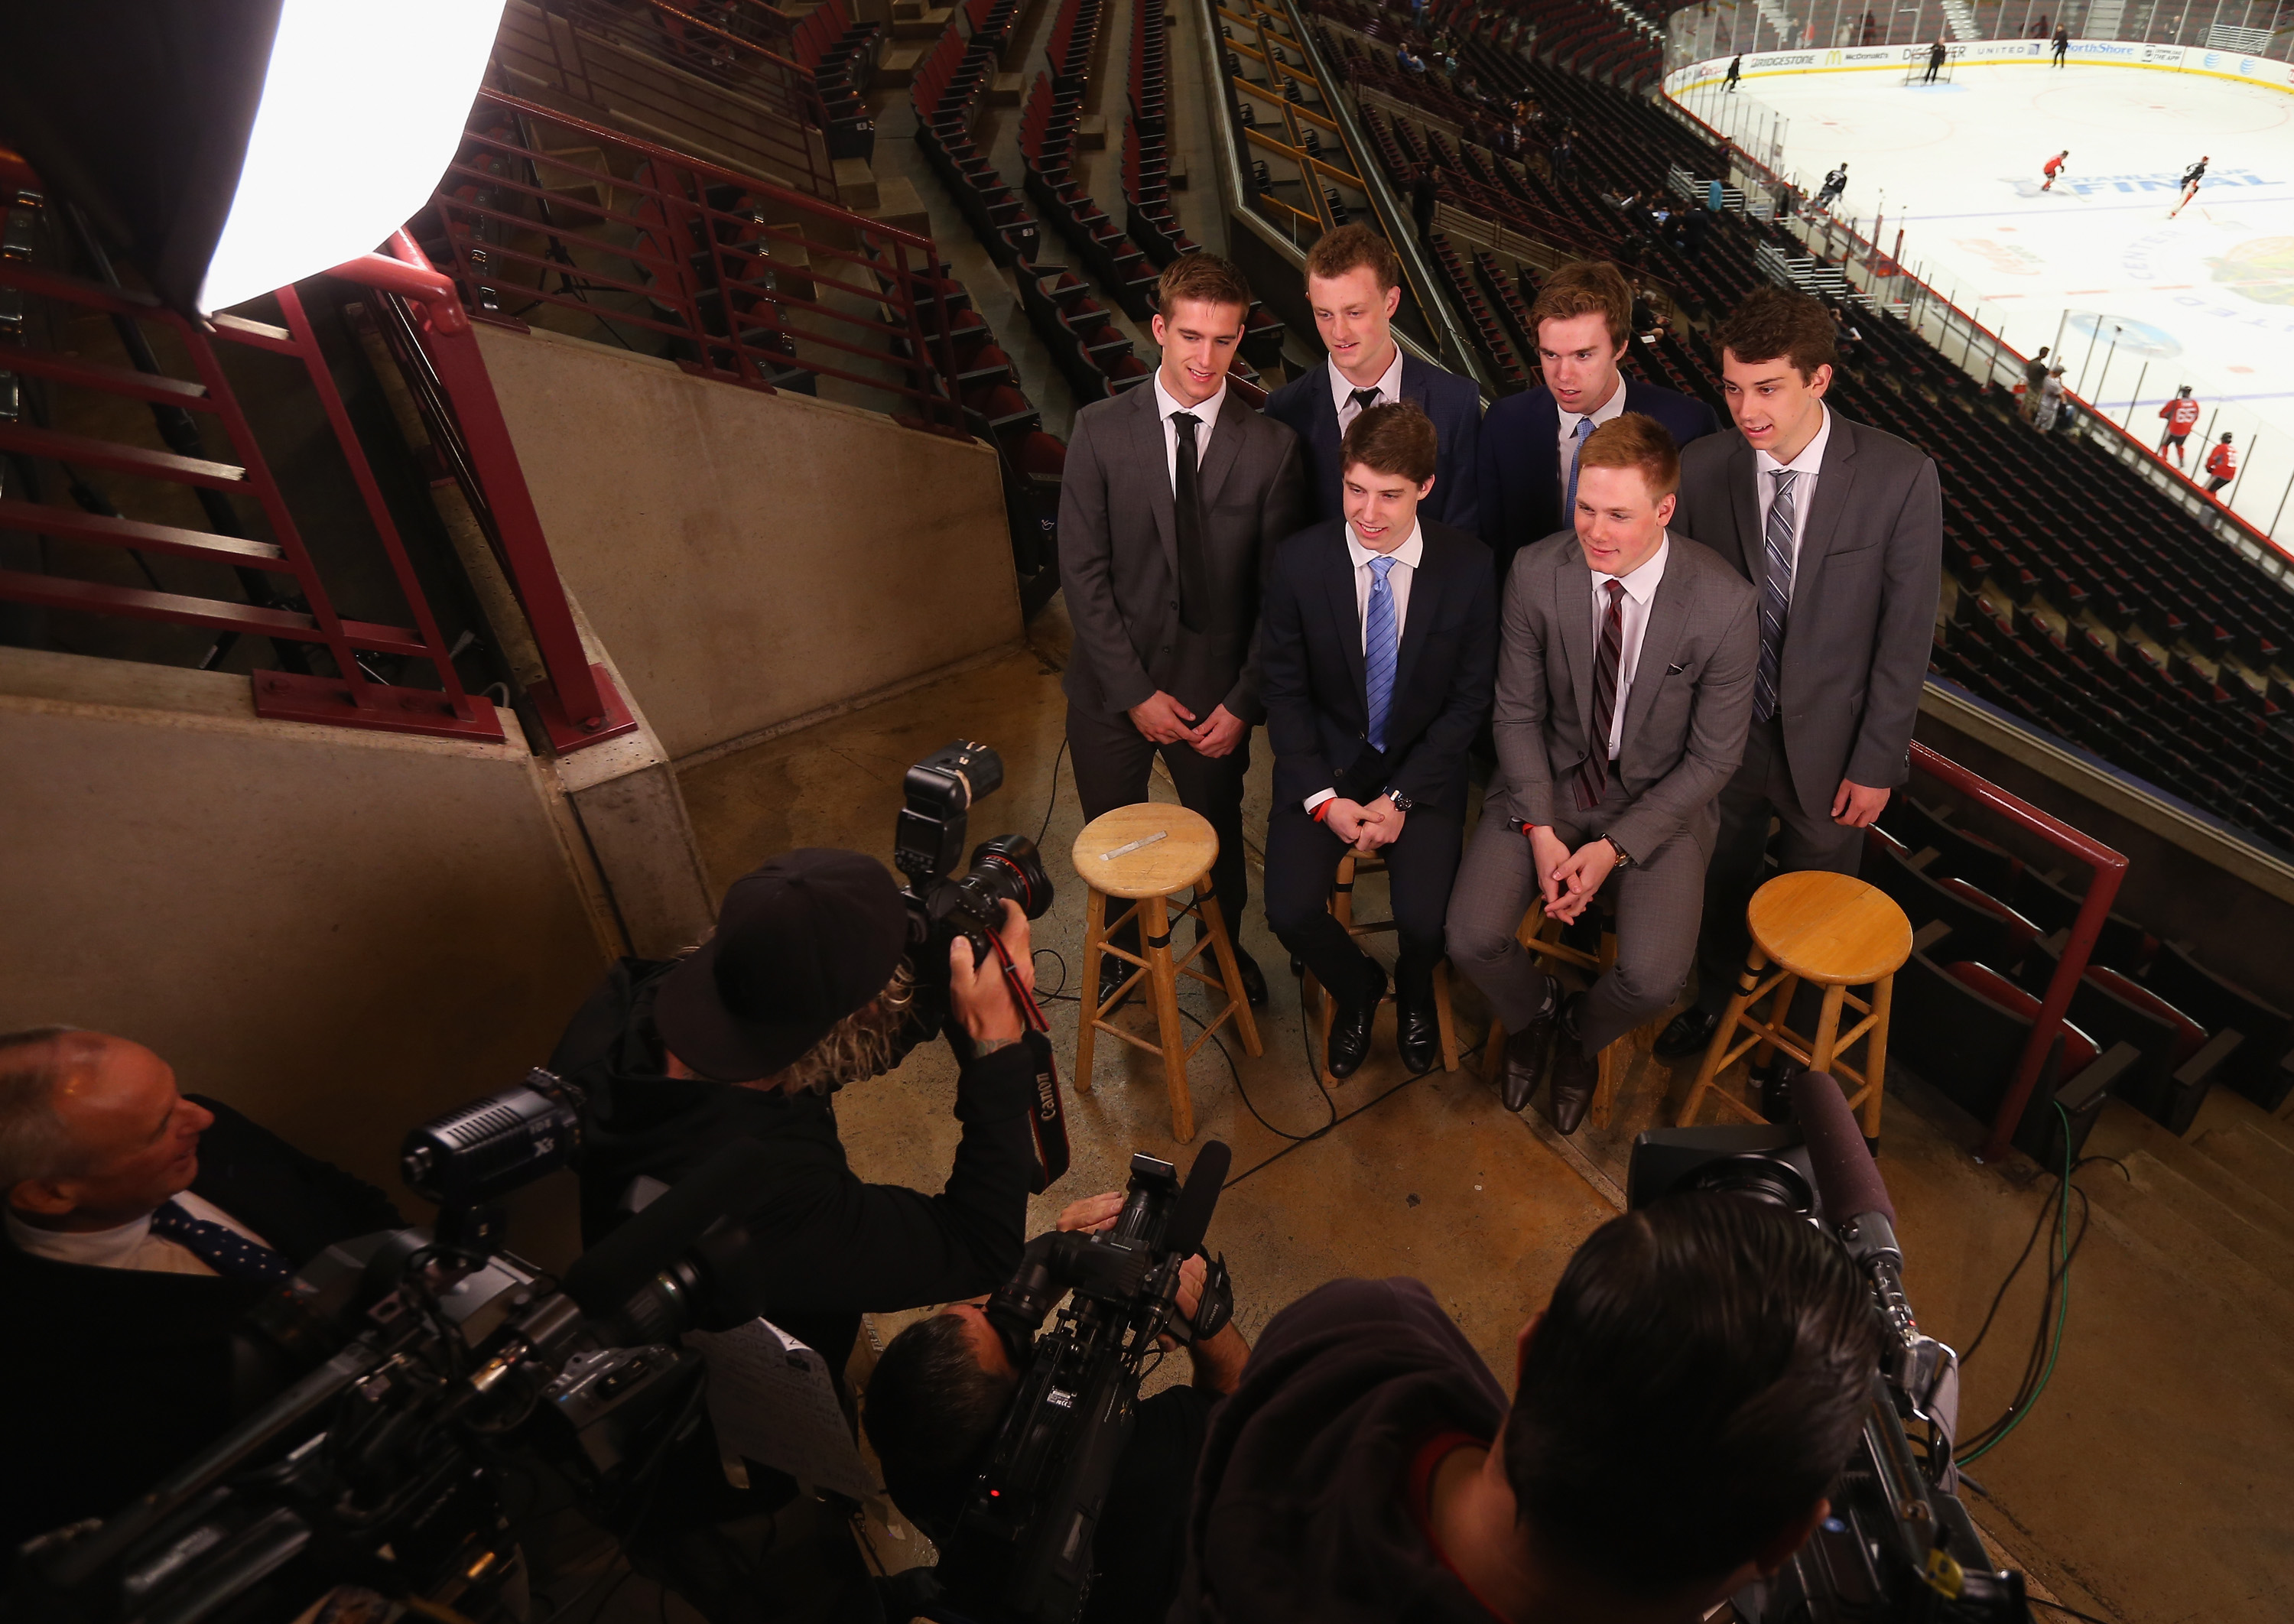 Noah Hanifin (nope), Jack Eichel (lol), Connor McDavid (LOL), Dylan Strome (nah), Mitchell Marner (bye), and Lawson Crouse (... maybe?)